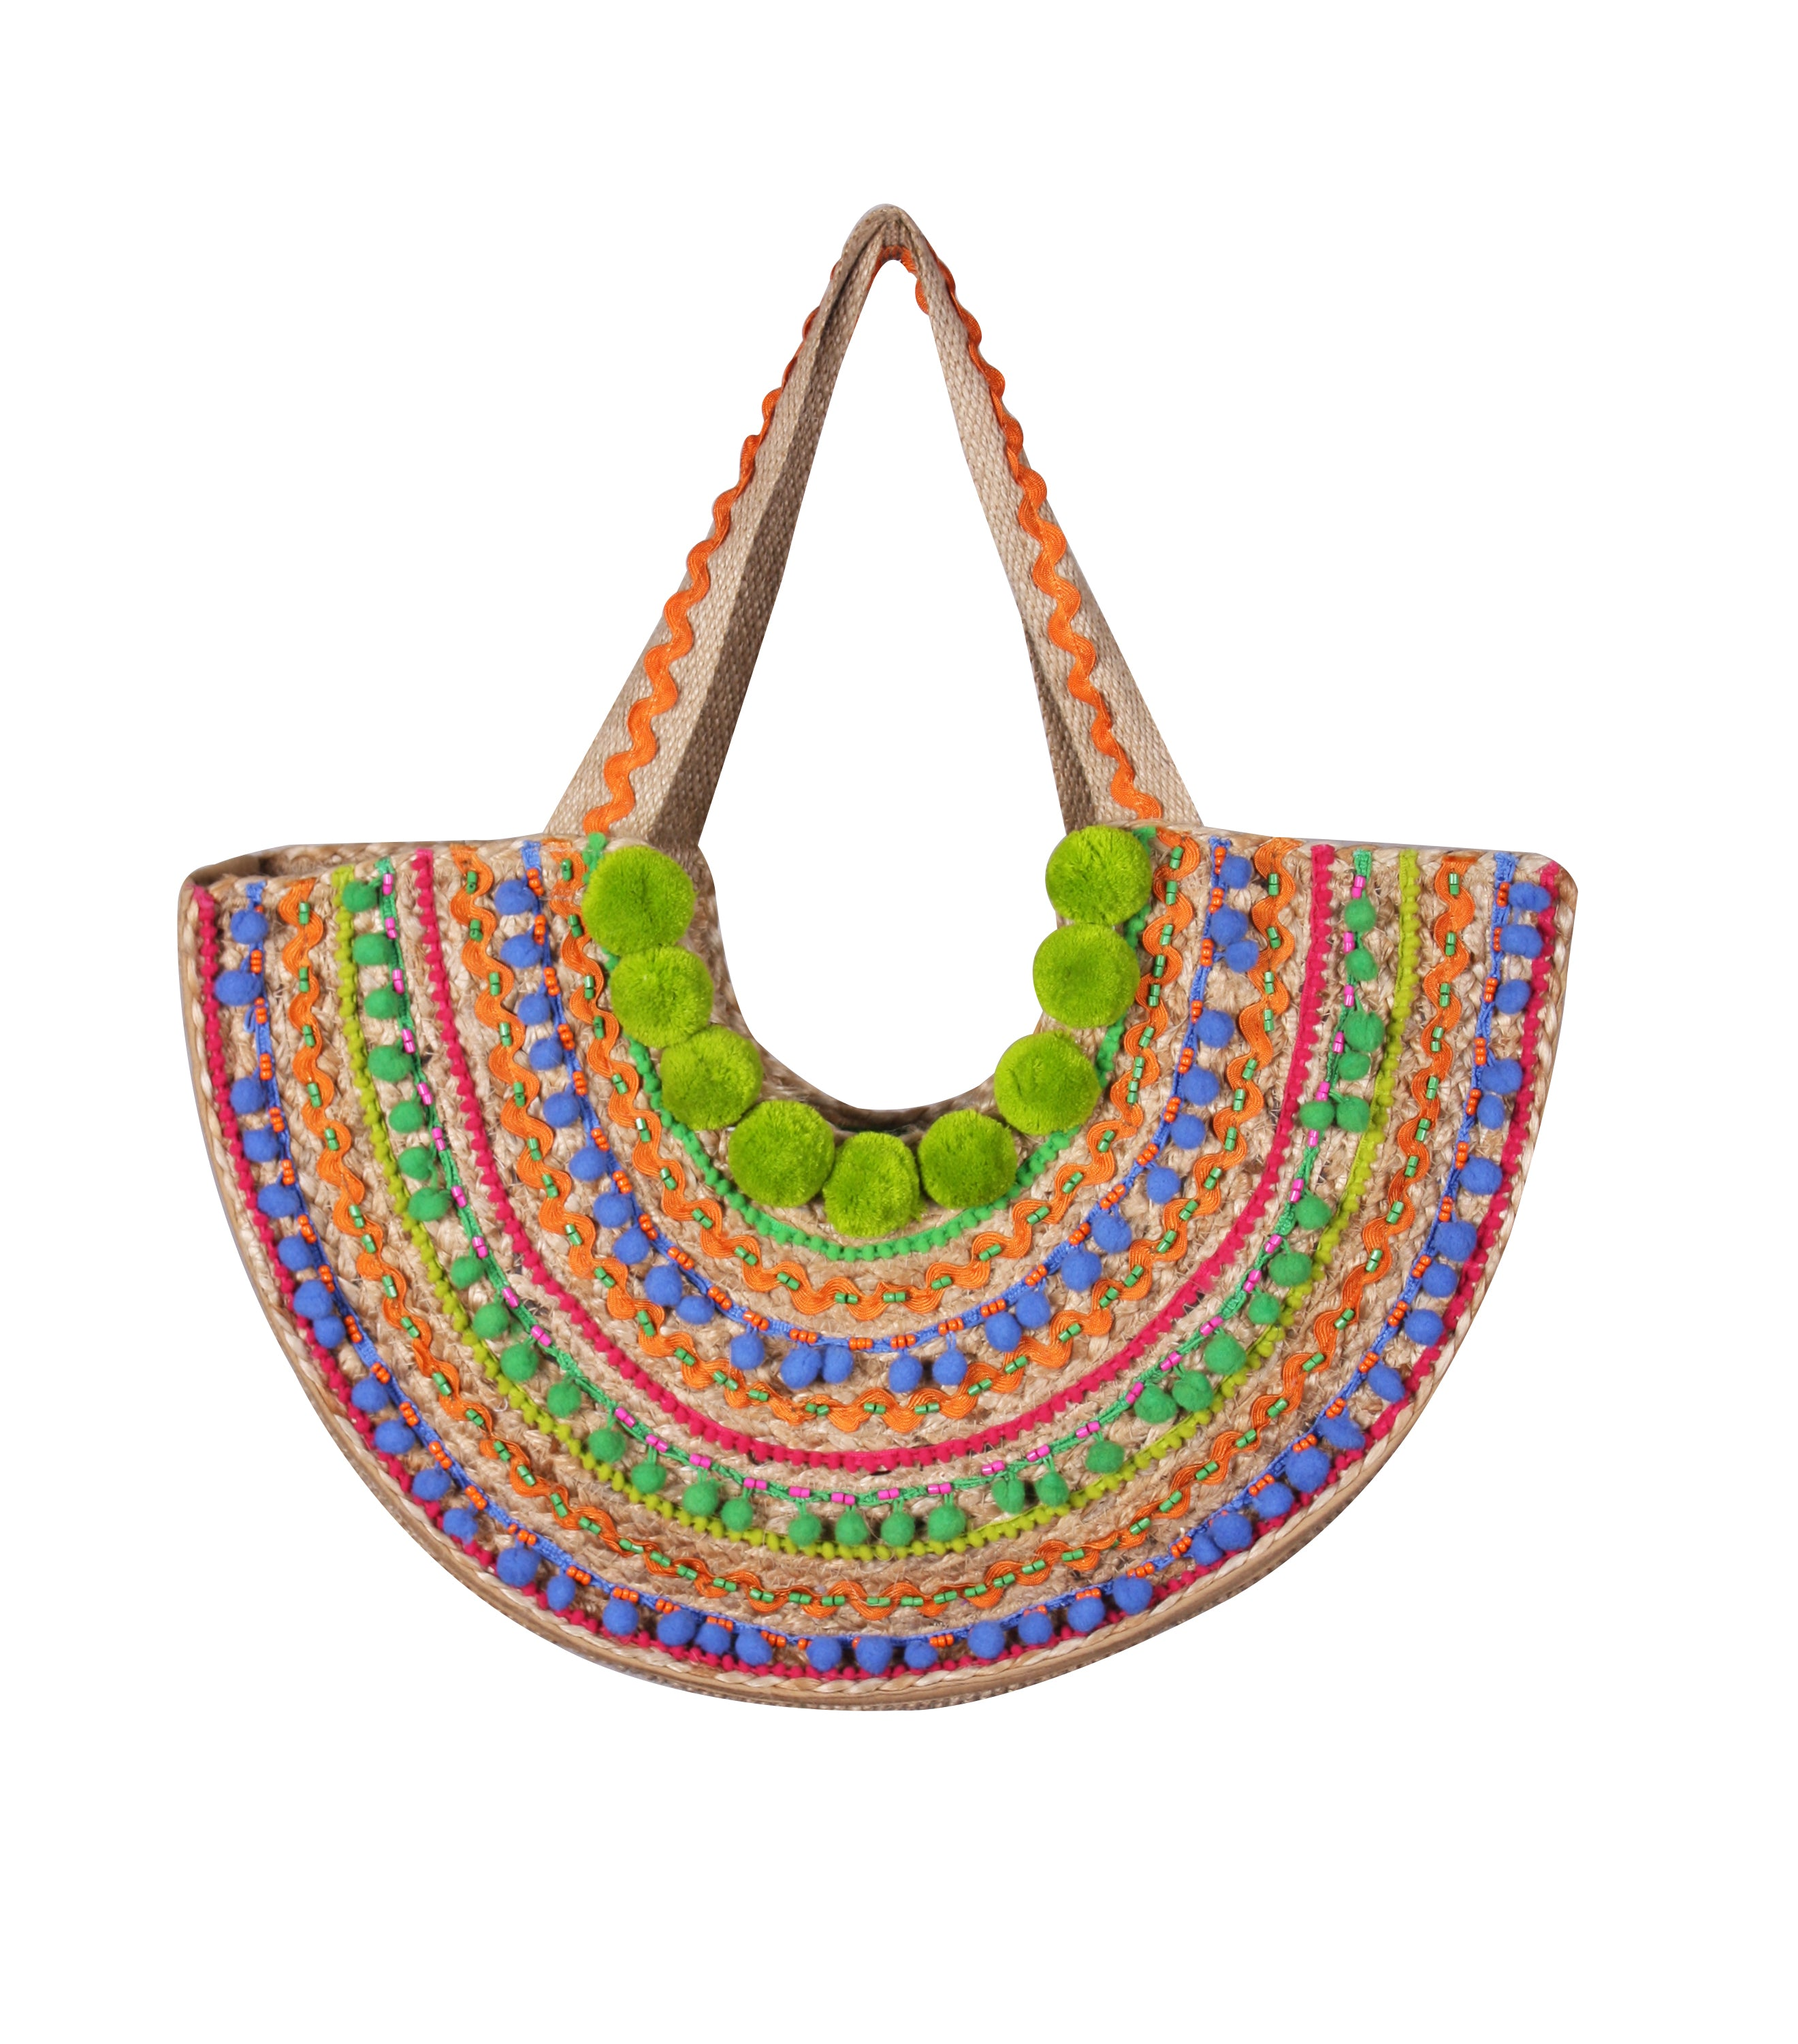 Pom Pom Fiest Jute Tote Bag - paulamariecollection